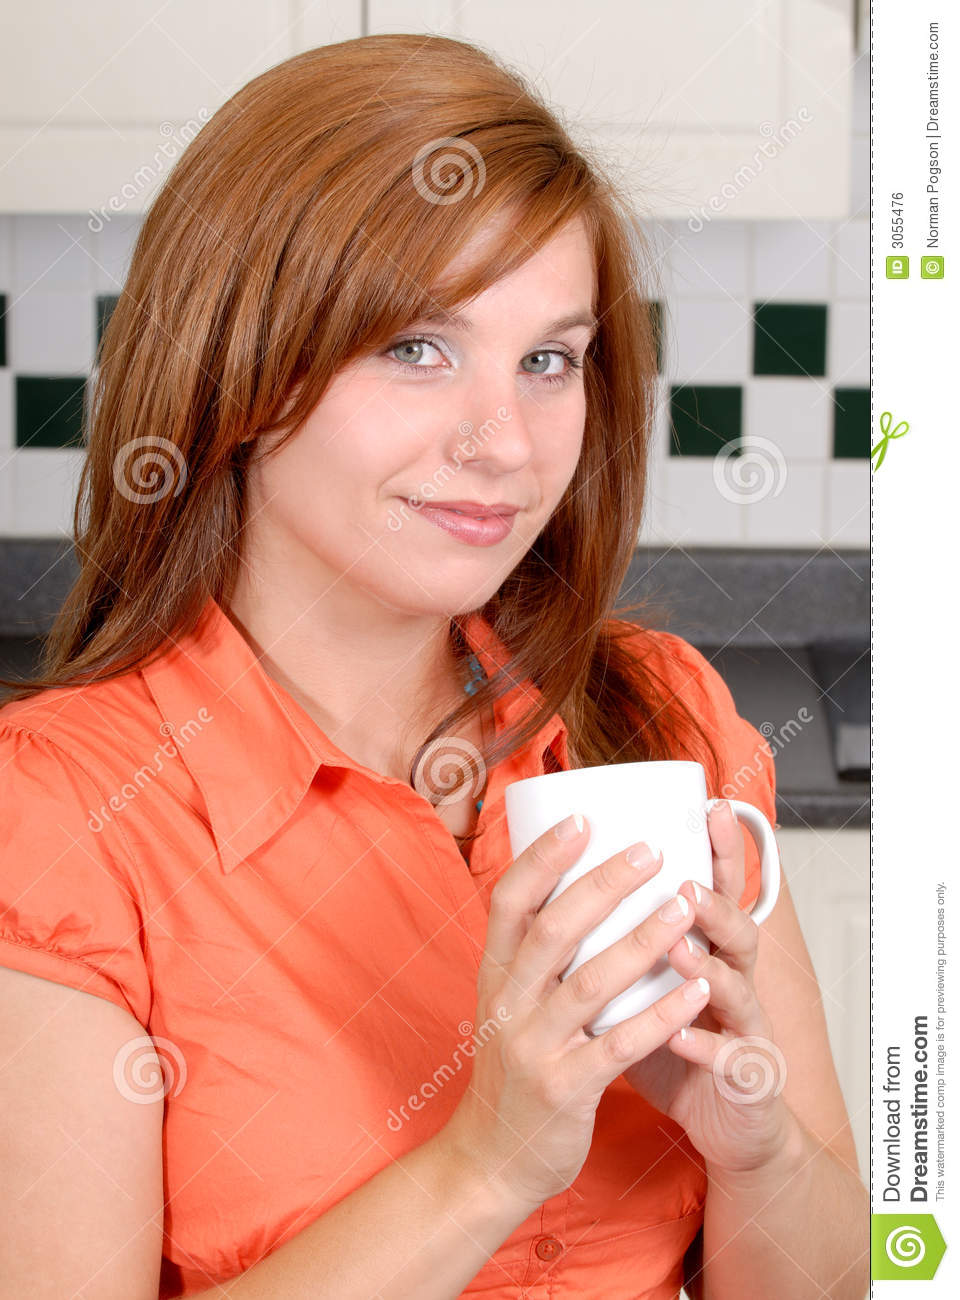 Pretty Redhead Woman Stock Photo Image Of Carefree